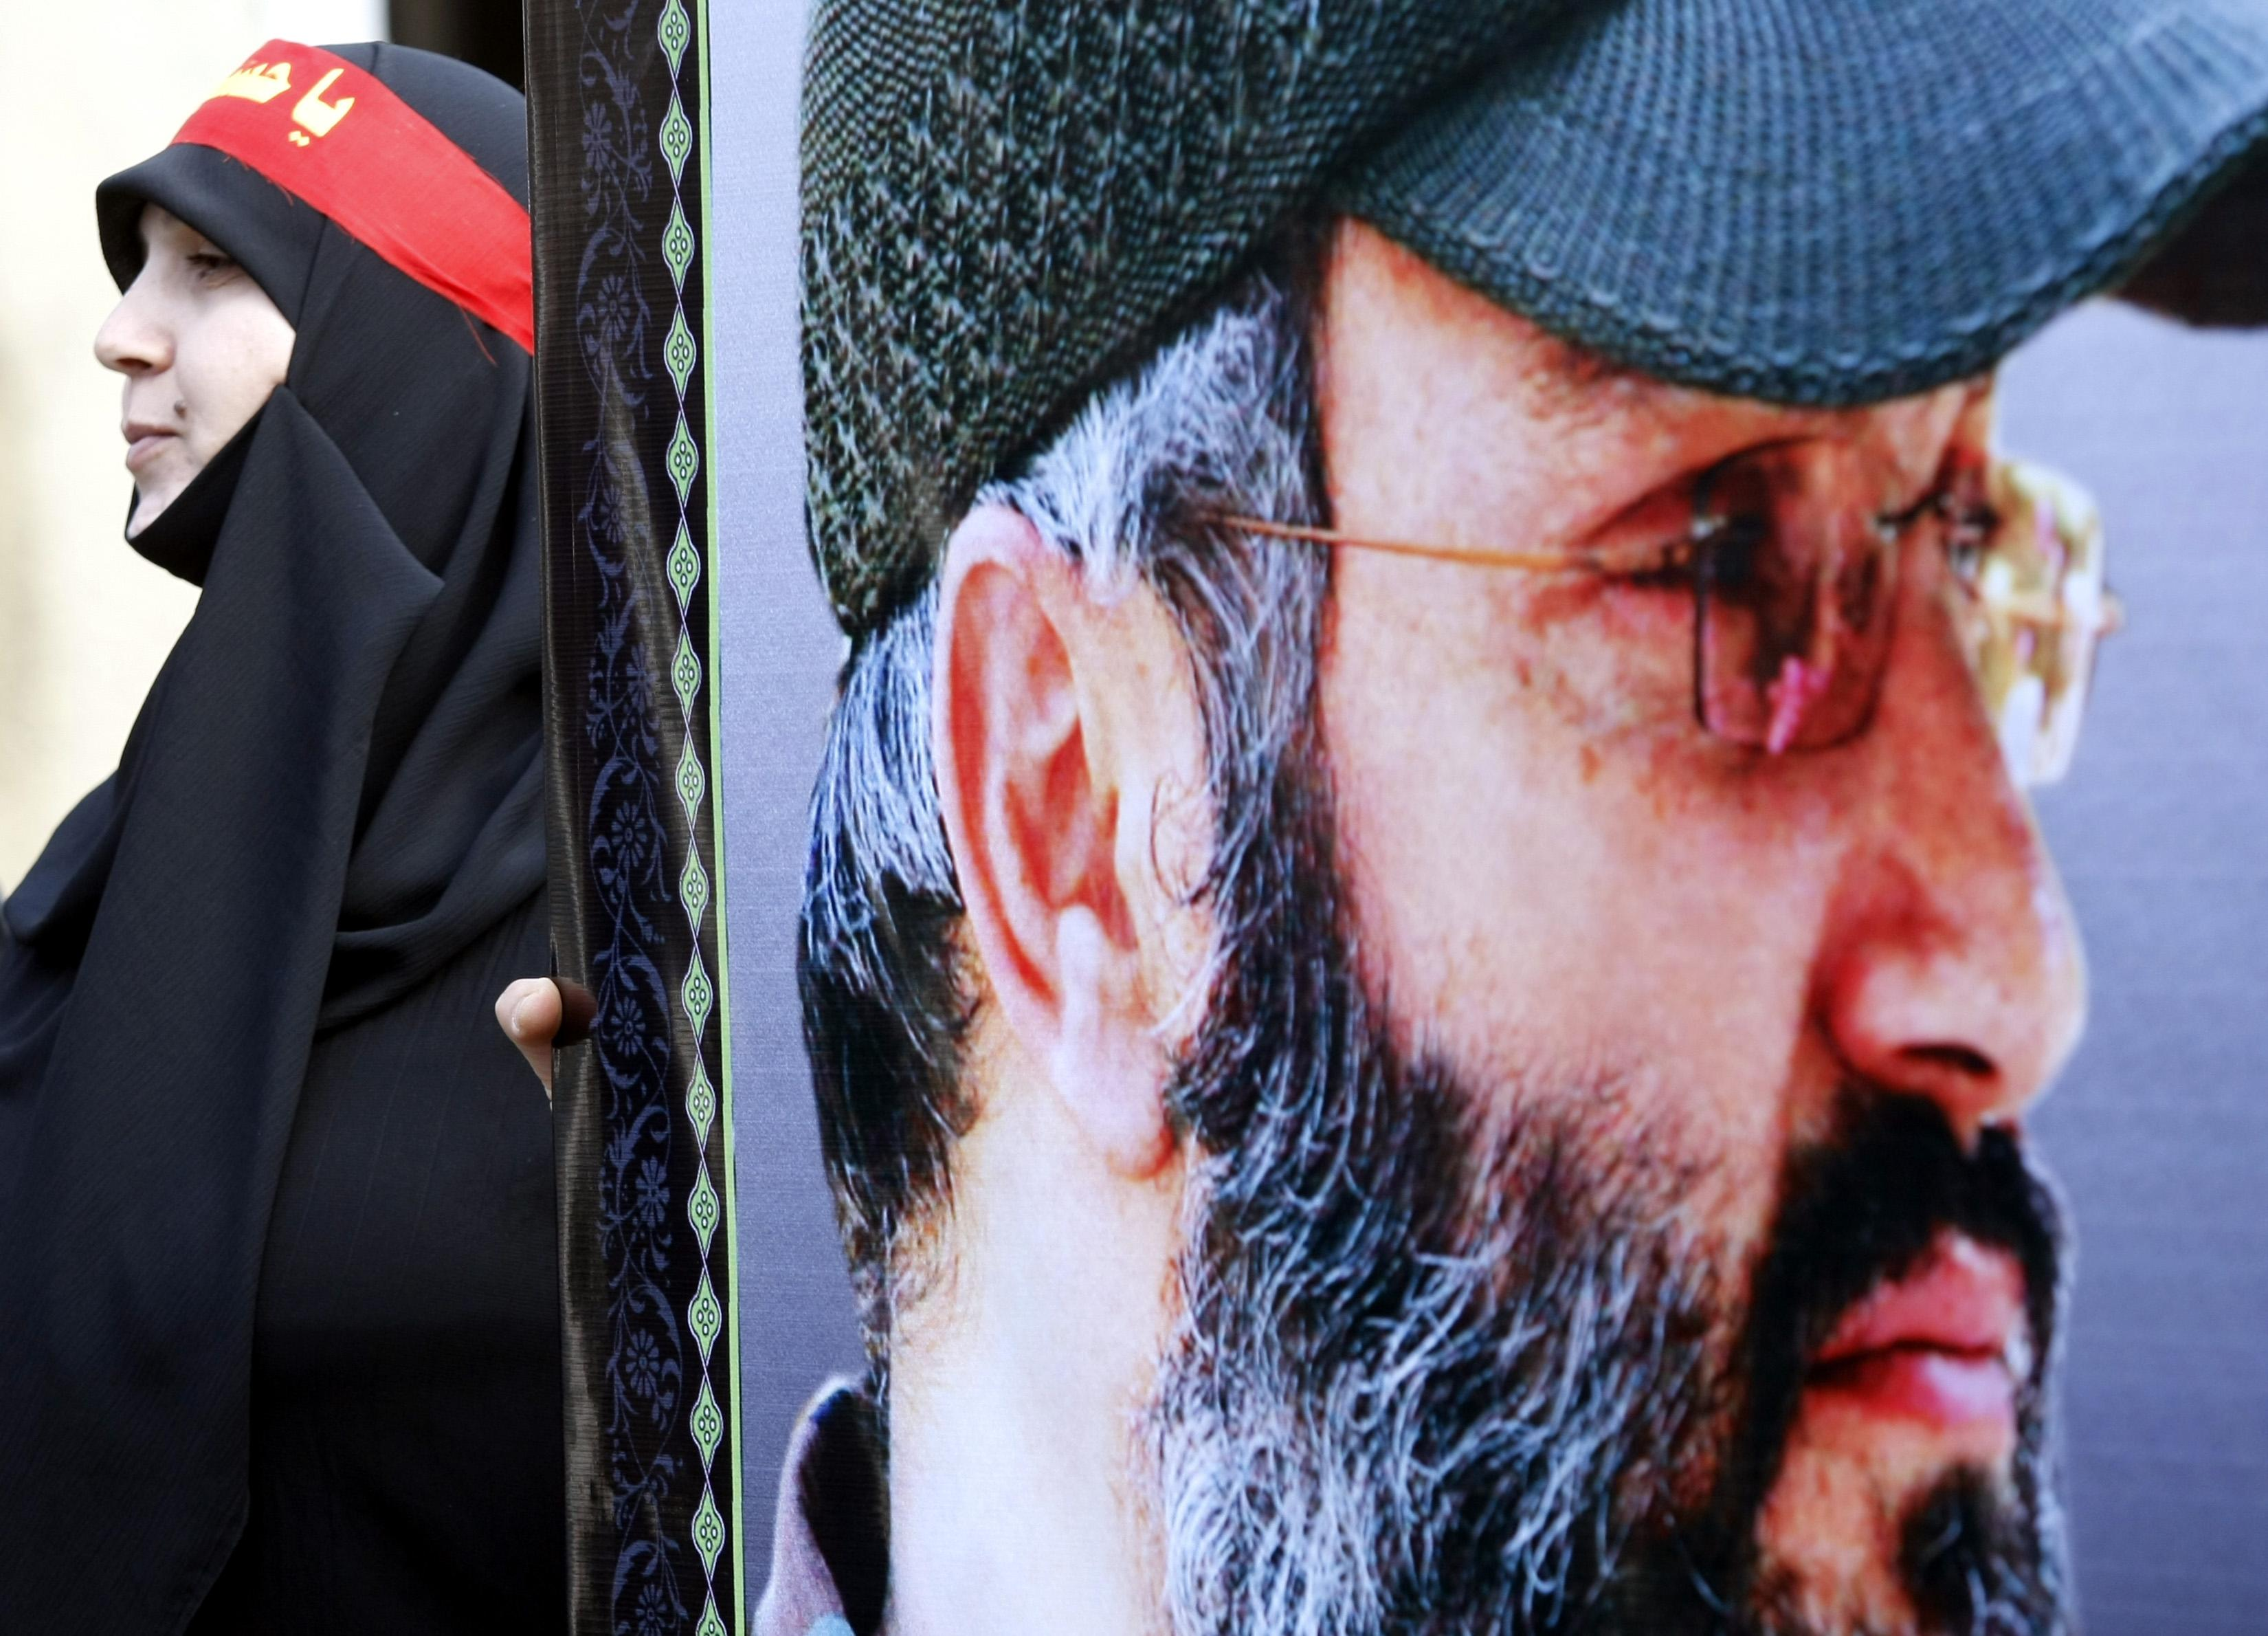 CIA, Israel plotted senior Hezbollah commander's killing: report